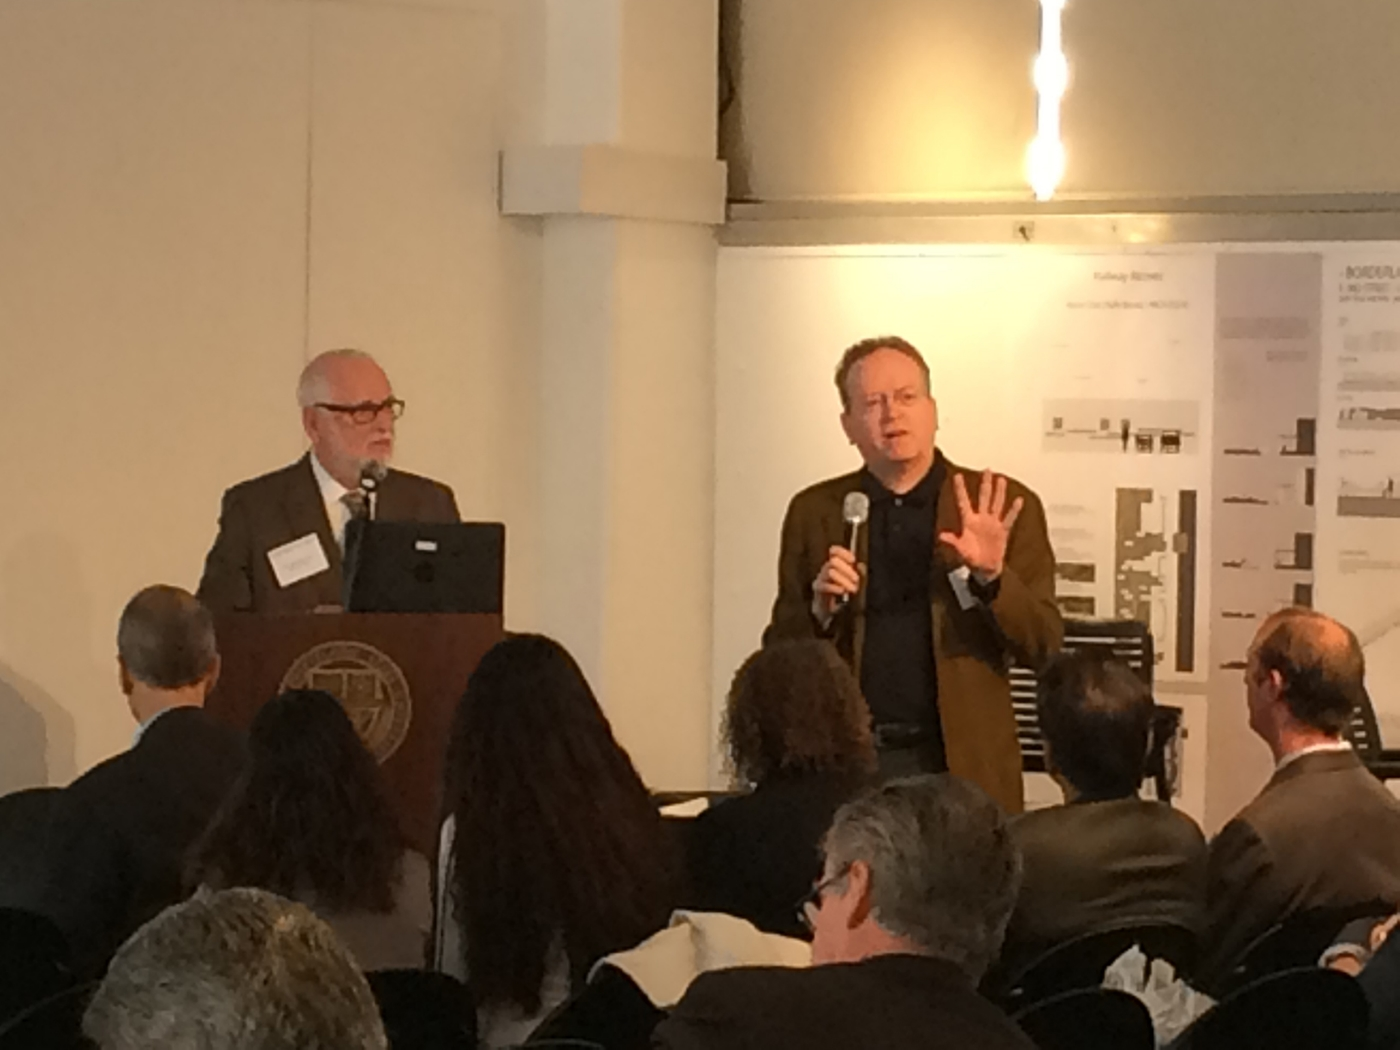 State Architect Chet Widom and Tim Culvahouse wrapping up DSA 7x7x7 Presentations